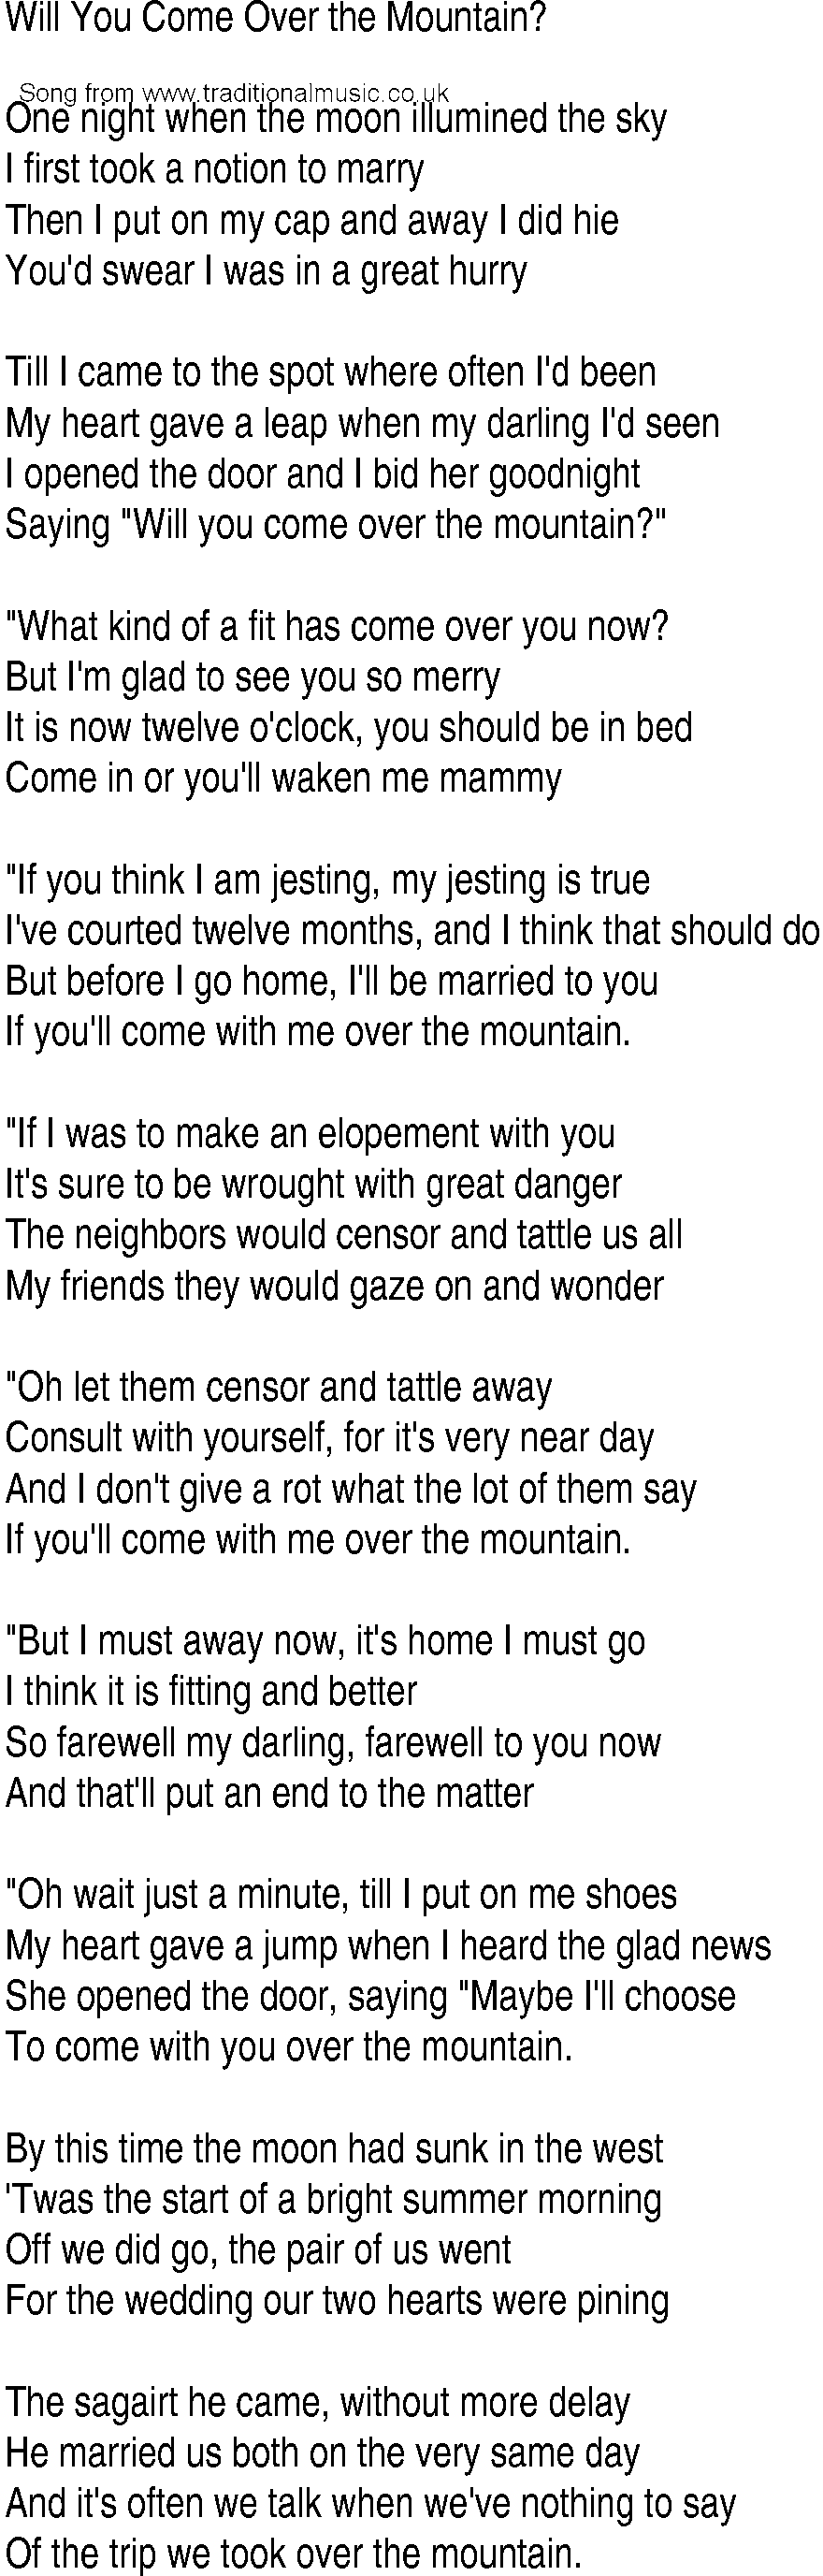 Irish Music Song And Ballad Lyrics For Will You Come